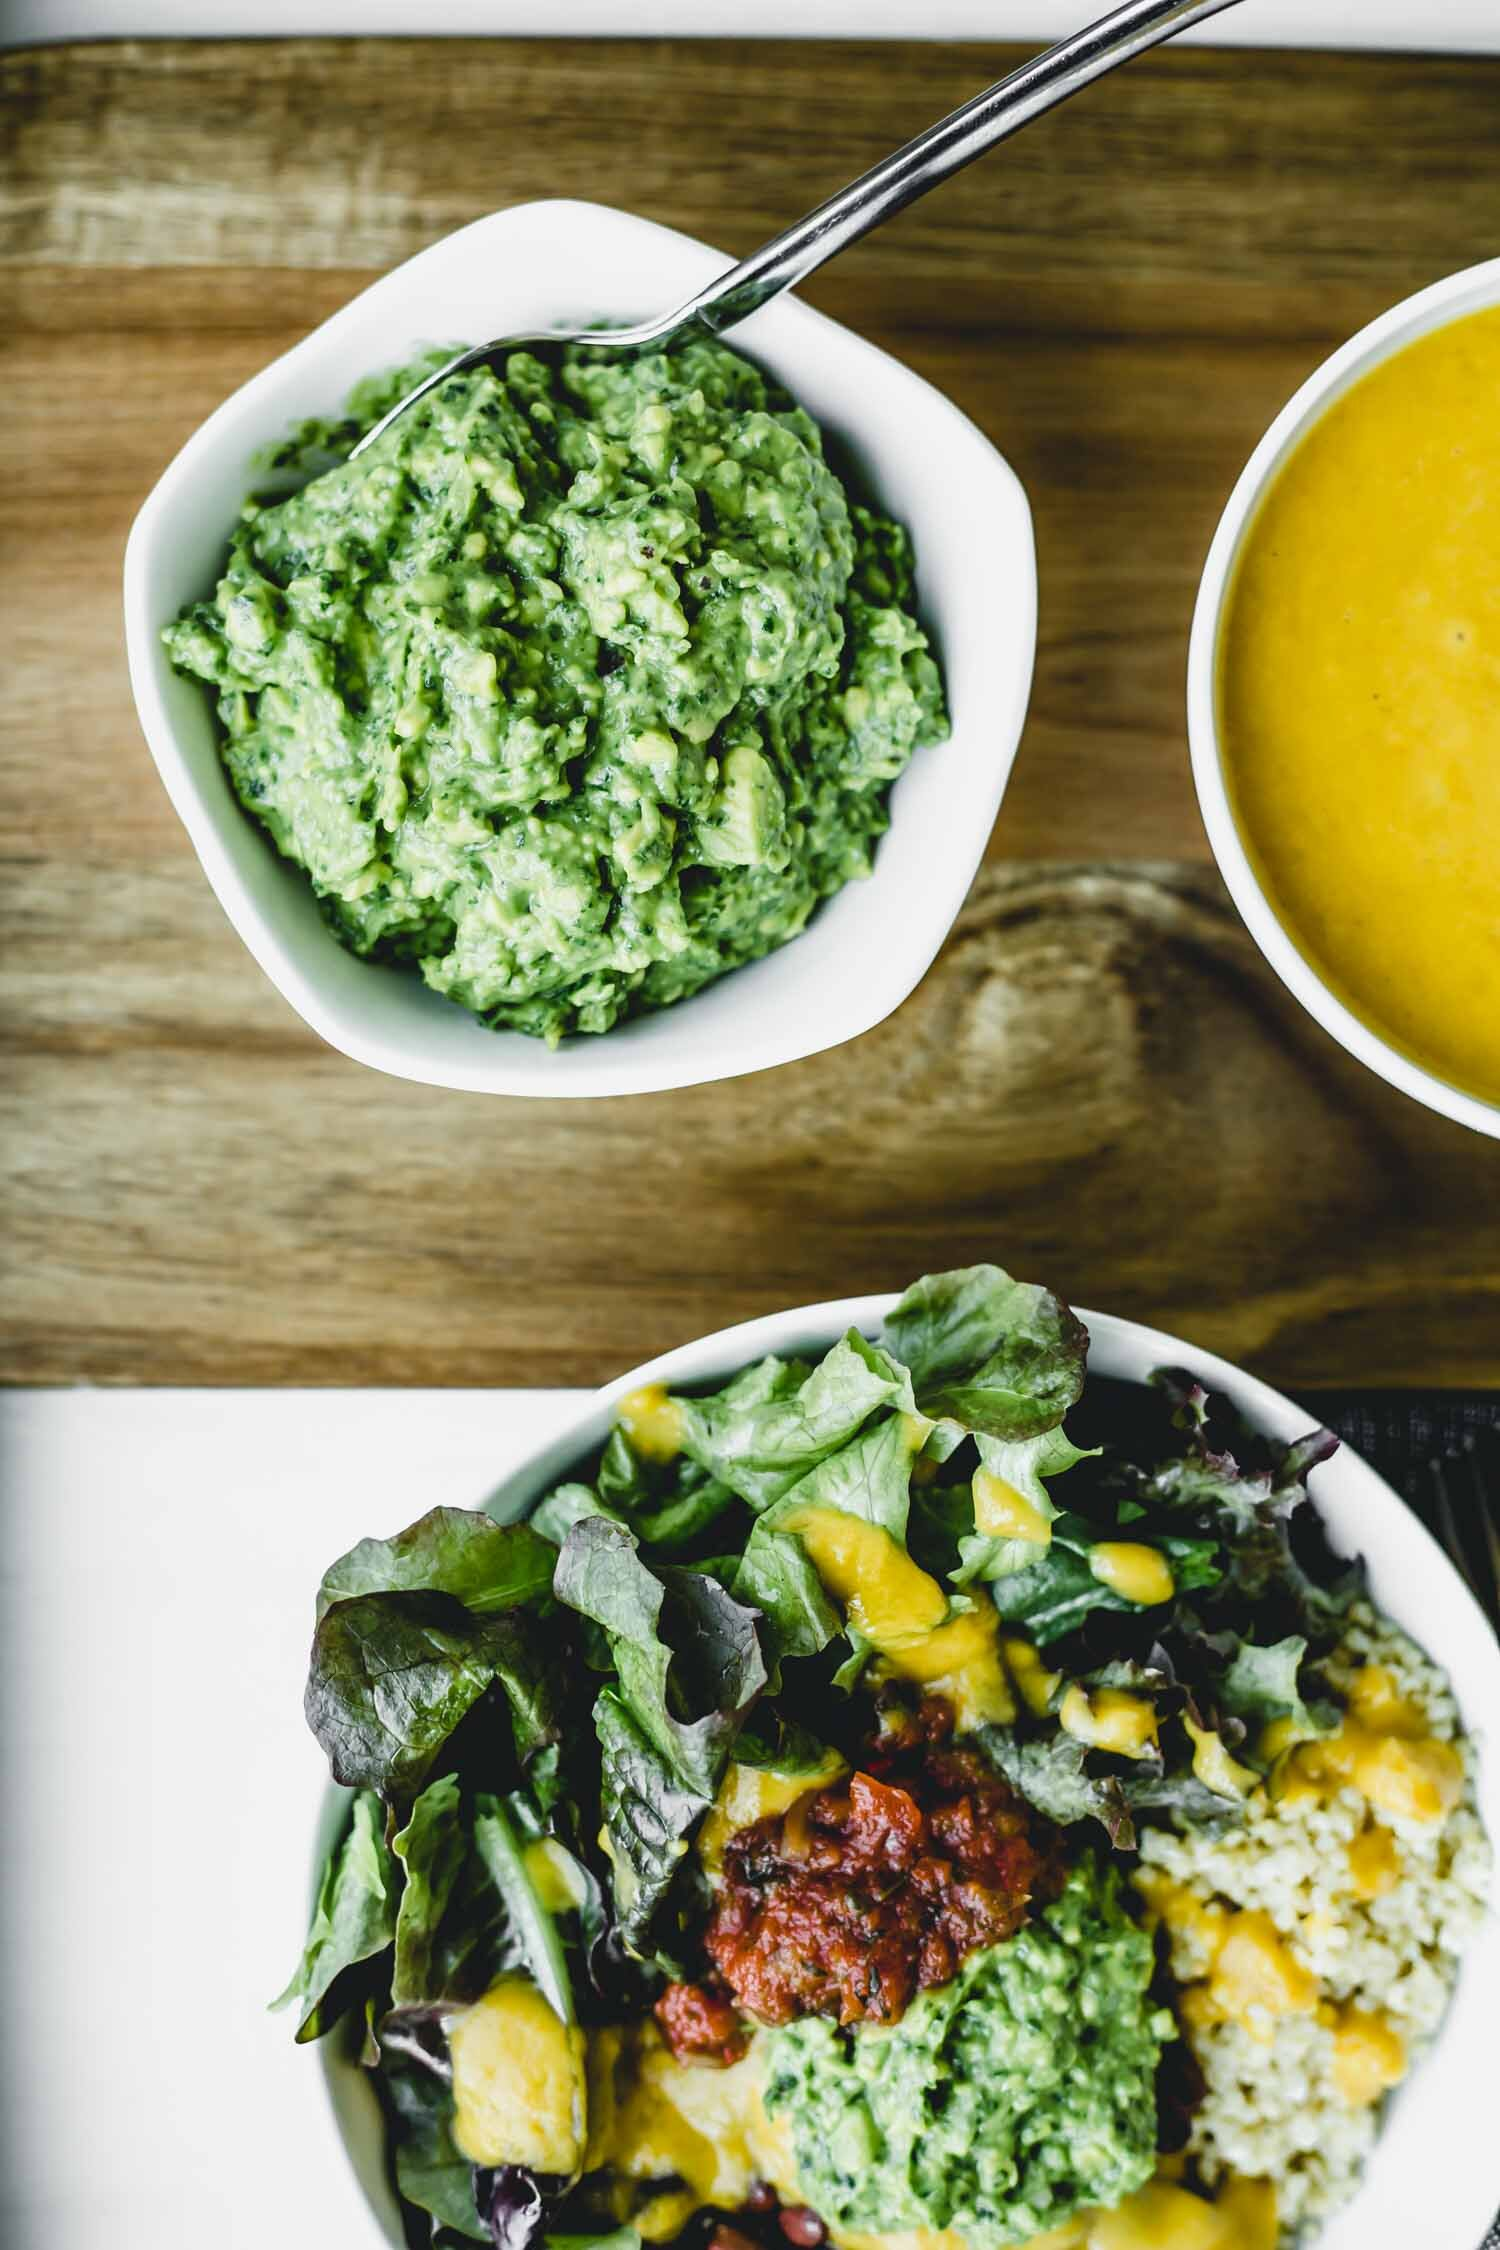 Power Greens Guacamole Recipe with Fresh Spinach | Beautiful Ingredient. Full of flavor and packed with nutrition, this guacamole is boosted with spinach and is a great way to get those extra greens in. #guacamolerecipe #guacamoleeasy #nutritiousrecipe #greens #guacamolerecipespinach #homemadeguac